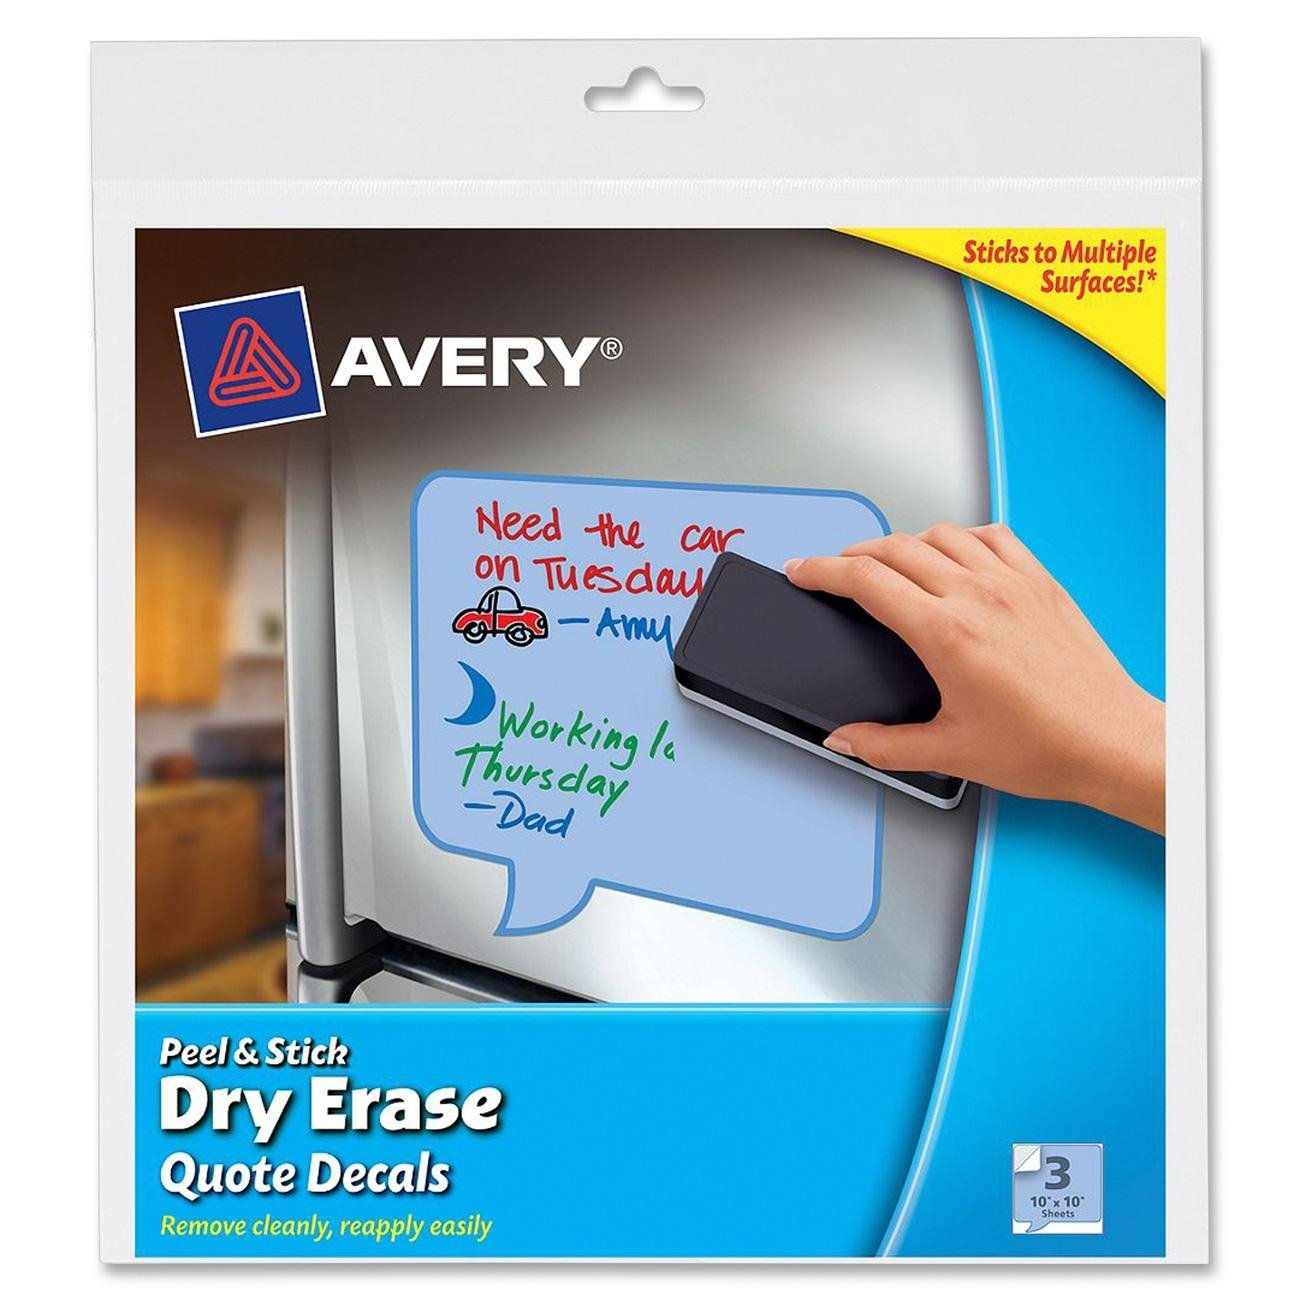 Avery Peel and Stick Dry Erase Decals, 10 x 10 inches, Blue, Quotes 3 Sheets (24308)